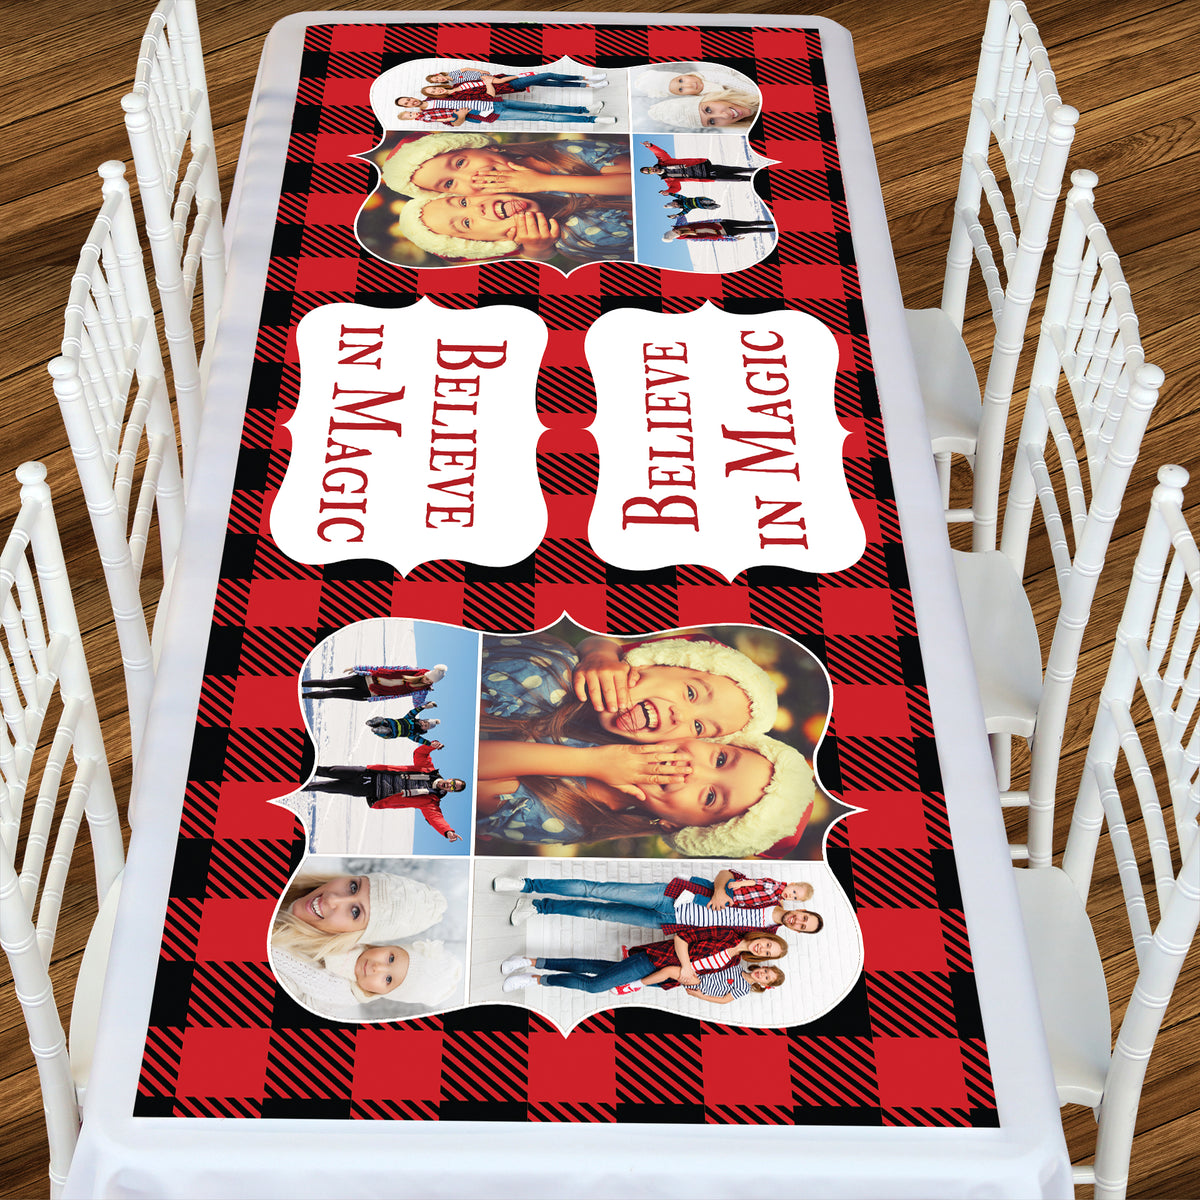 Cozy Plaid Rectangle Table Top-It